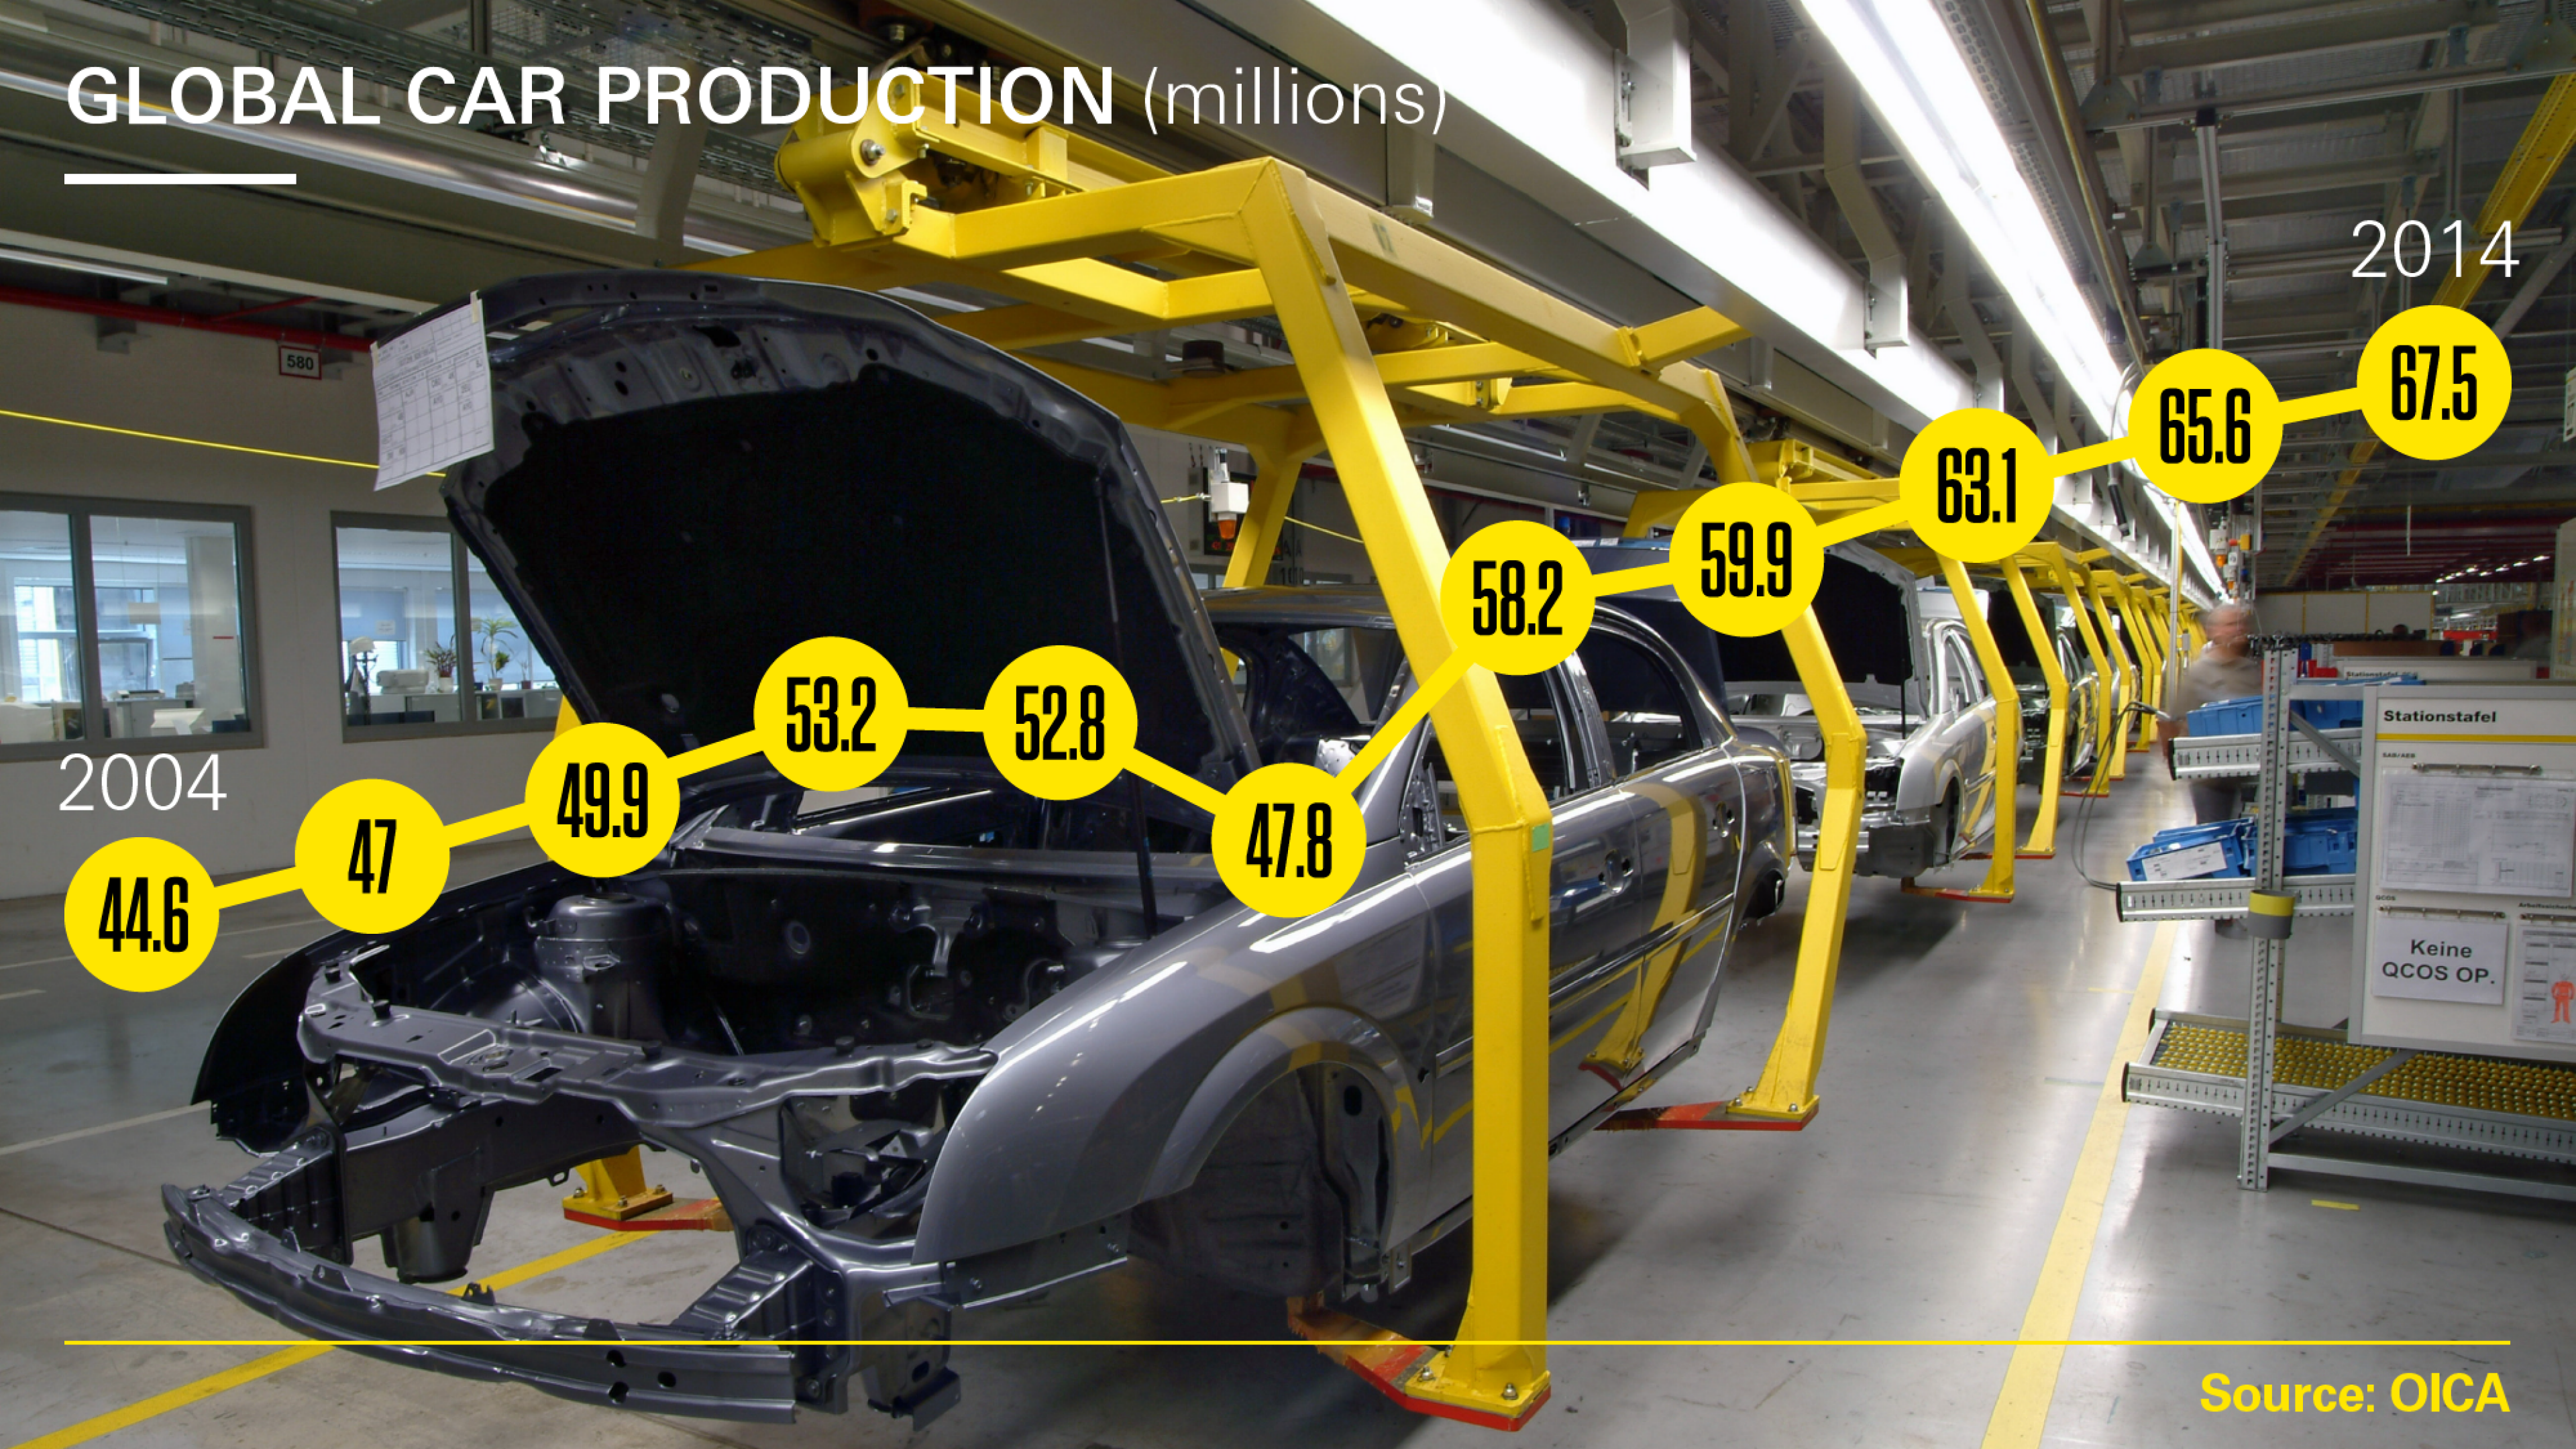 Annual global car production in millions from 2004 - 2014